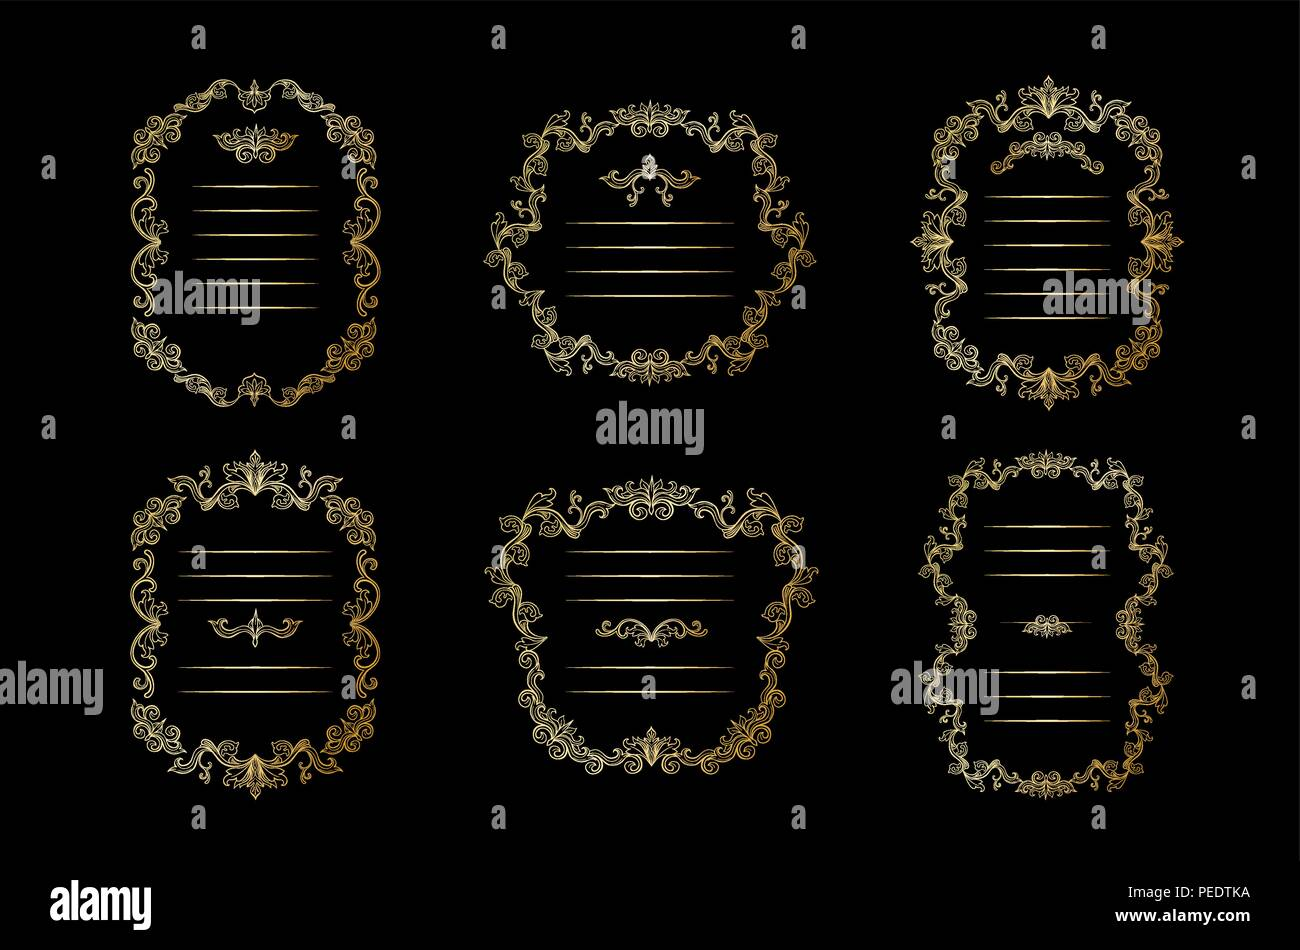 3f994ac48348 Gold Frames Stock Vector Images - Alamy